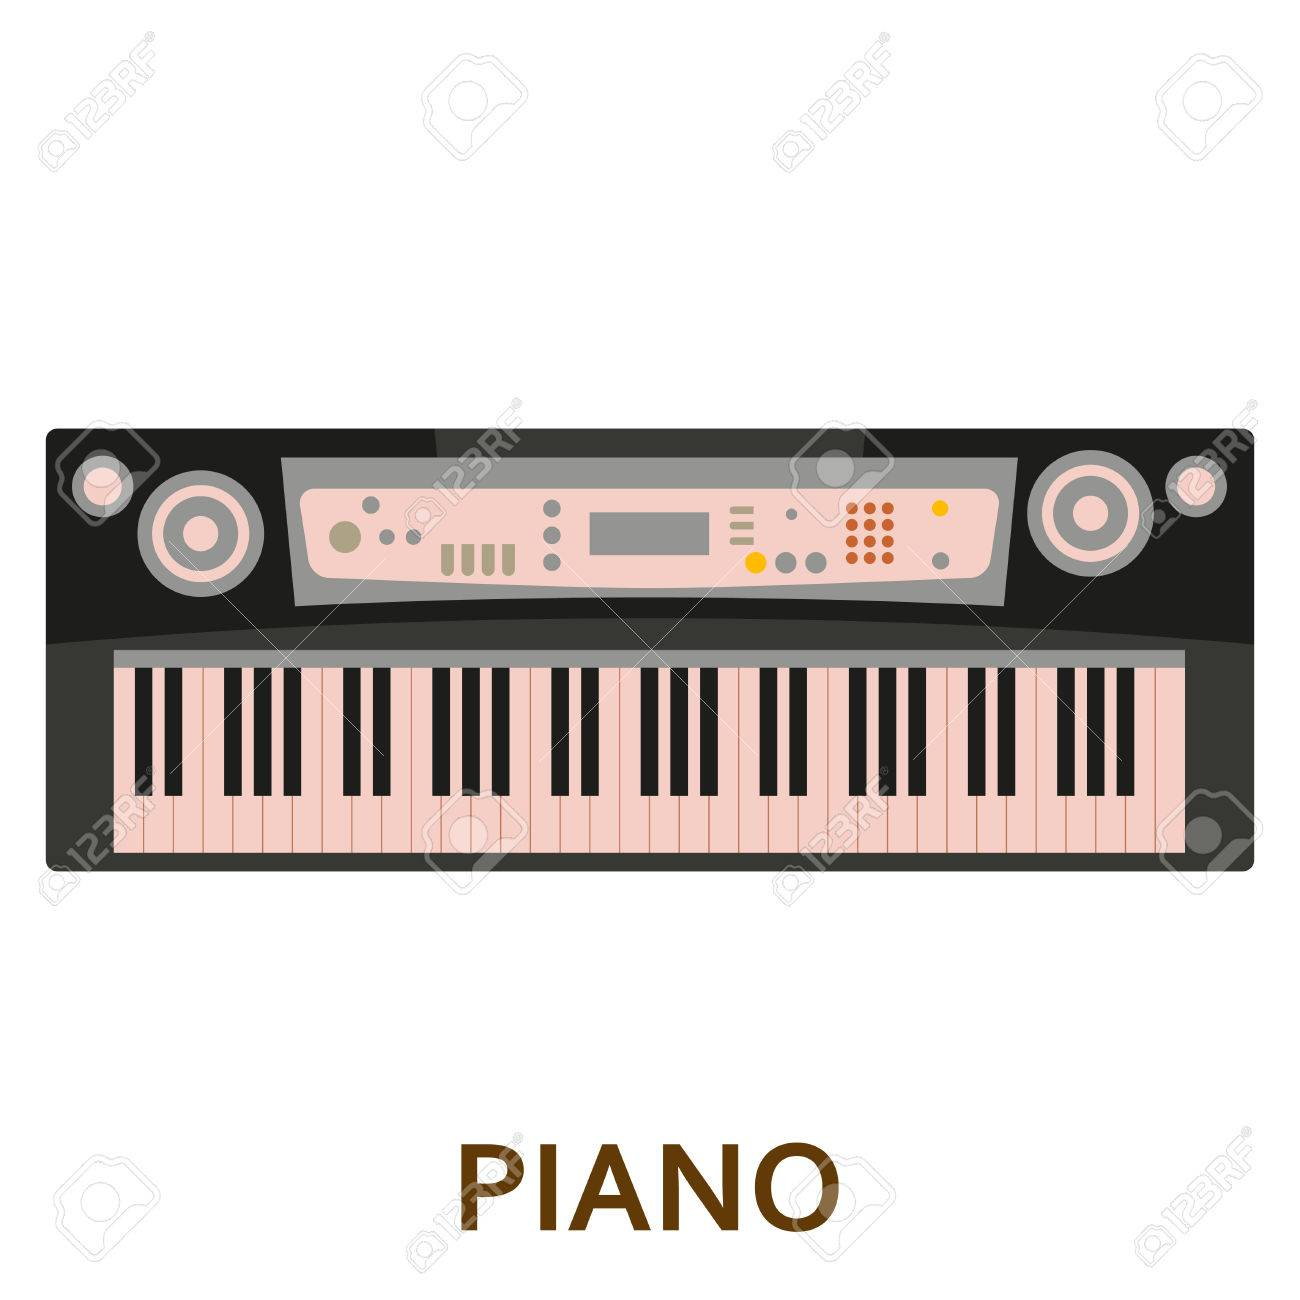 Piano Vector Flat Illustration Stock